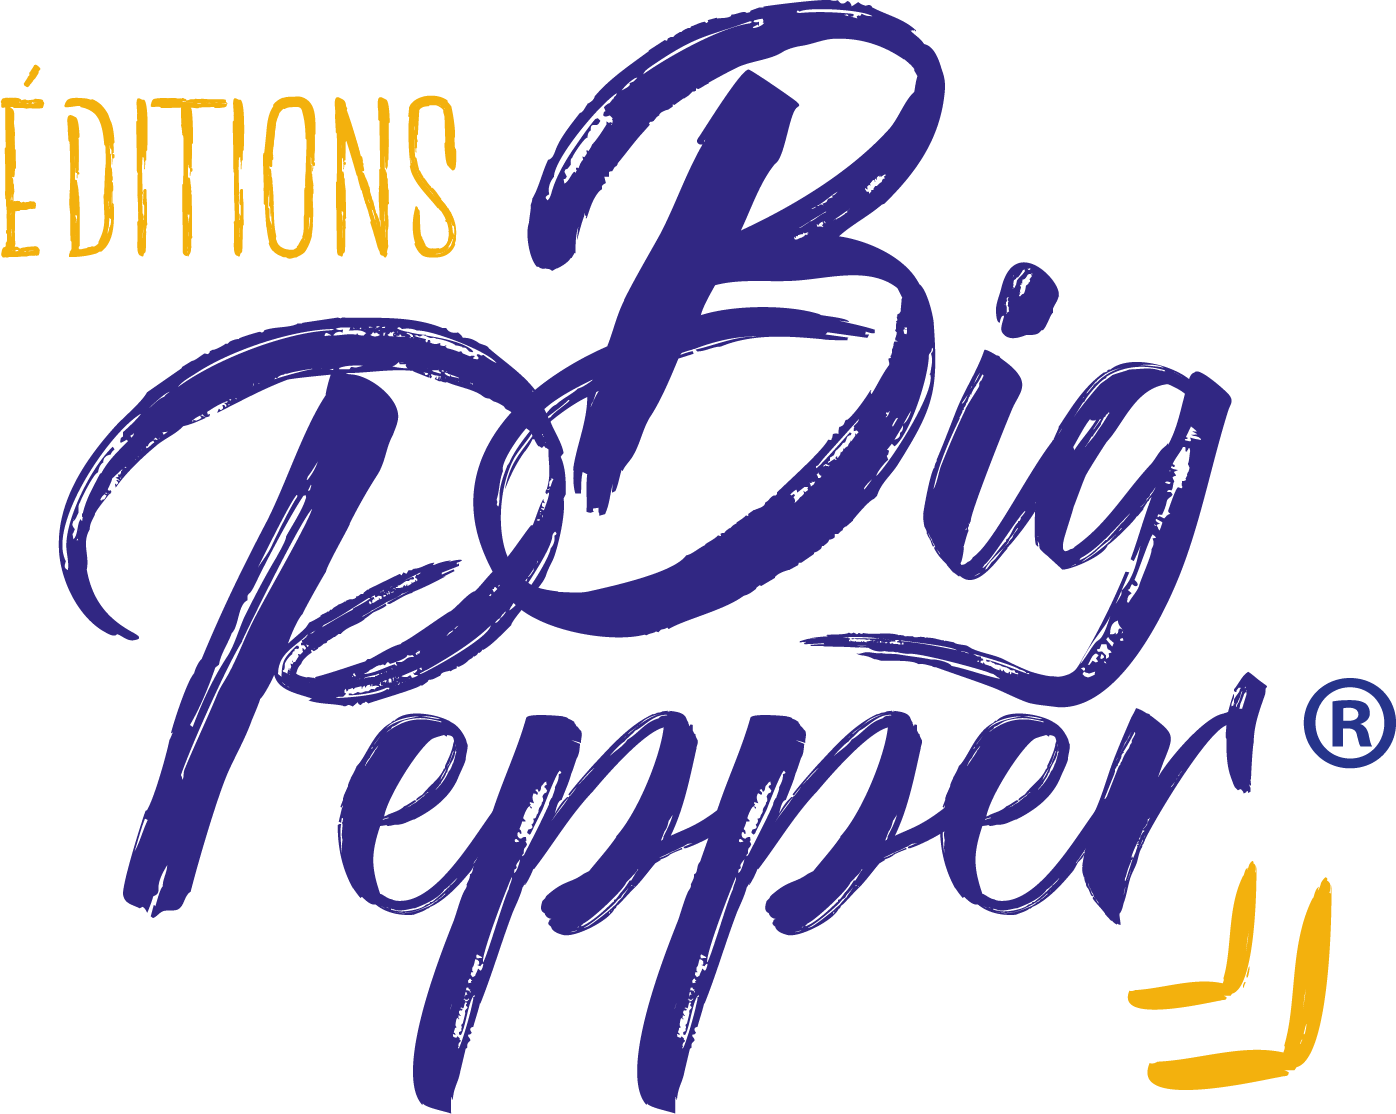 Big Pepper